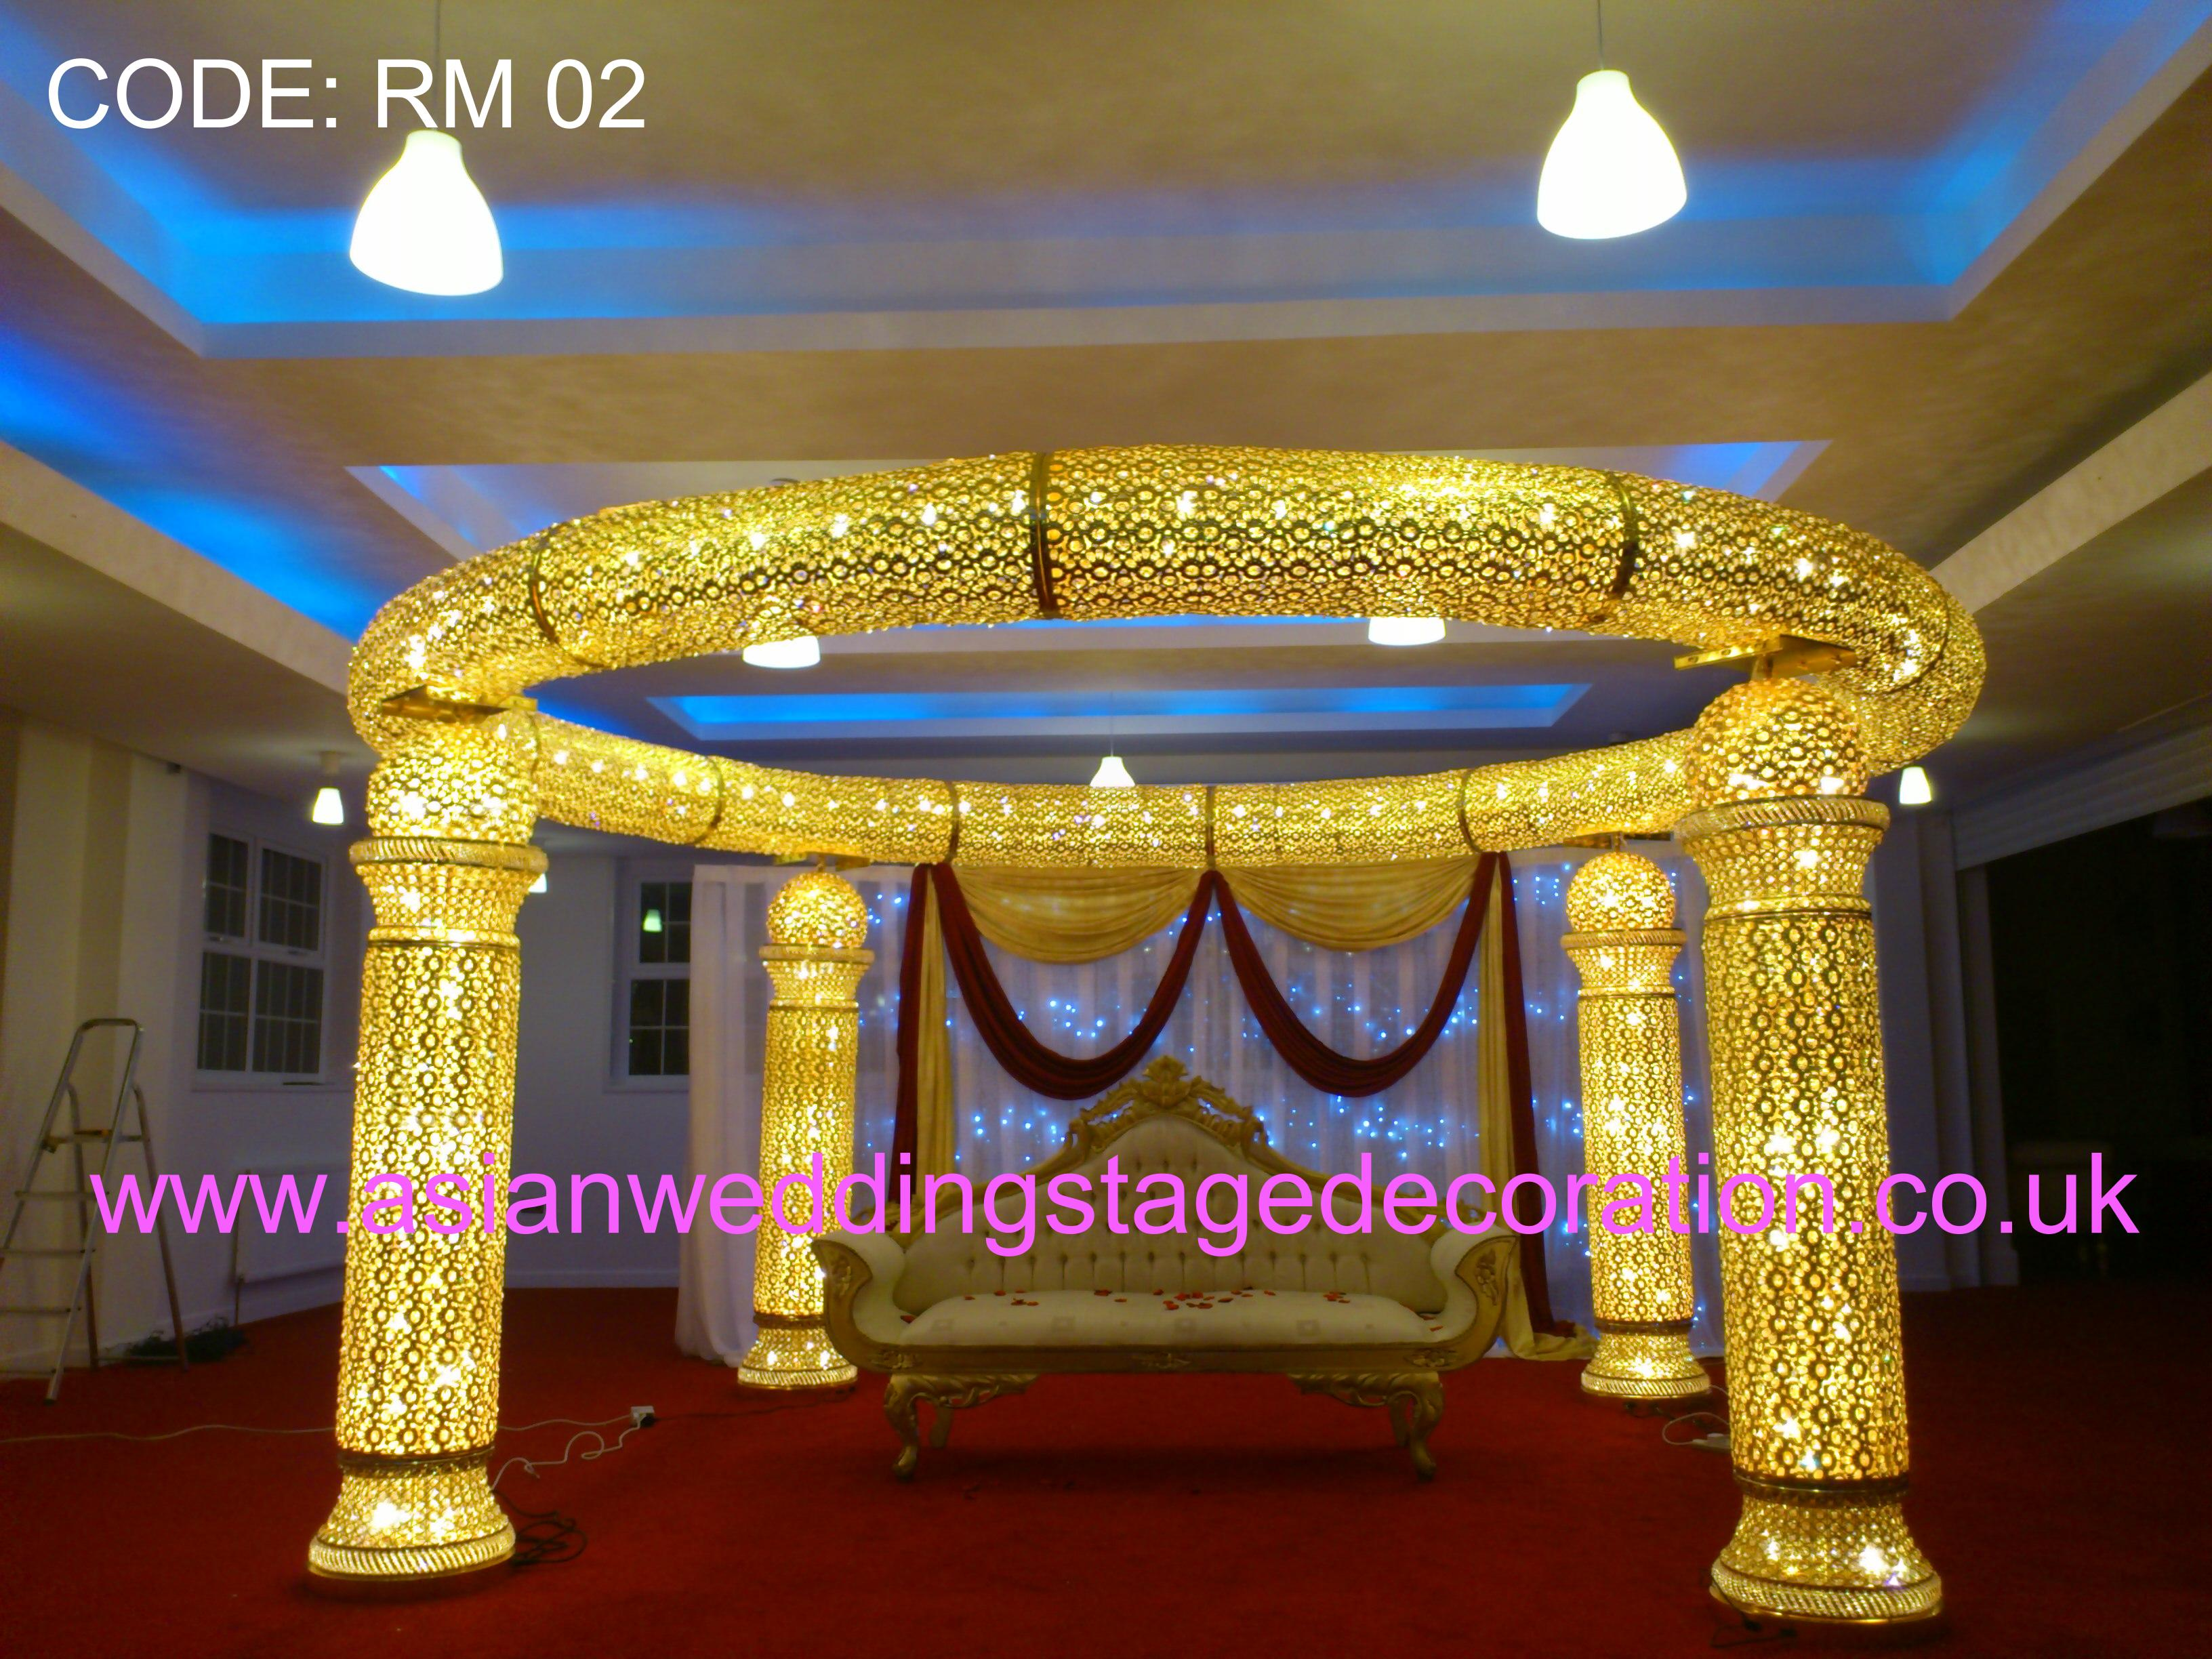 Asian wedding stage decoration quotes for Asian wedding stage decoration birmingham